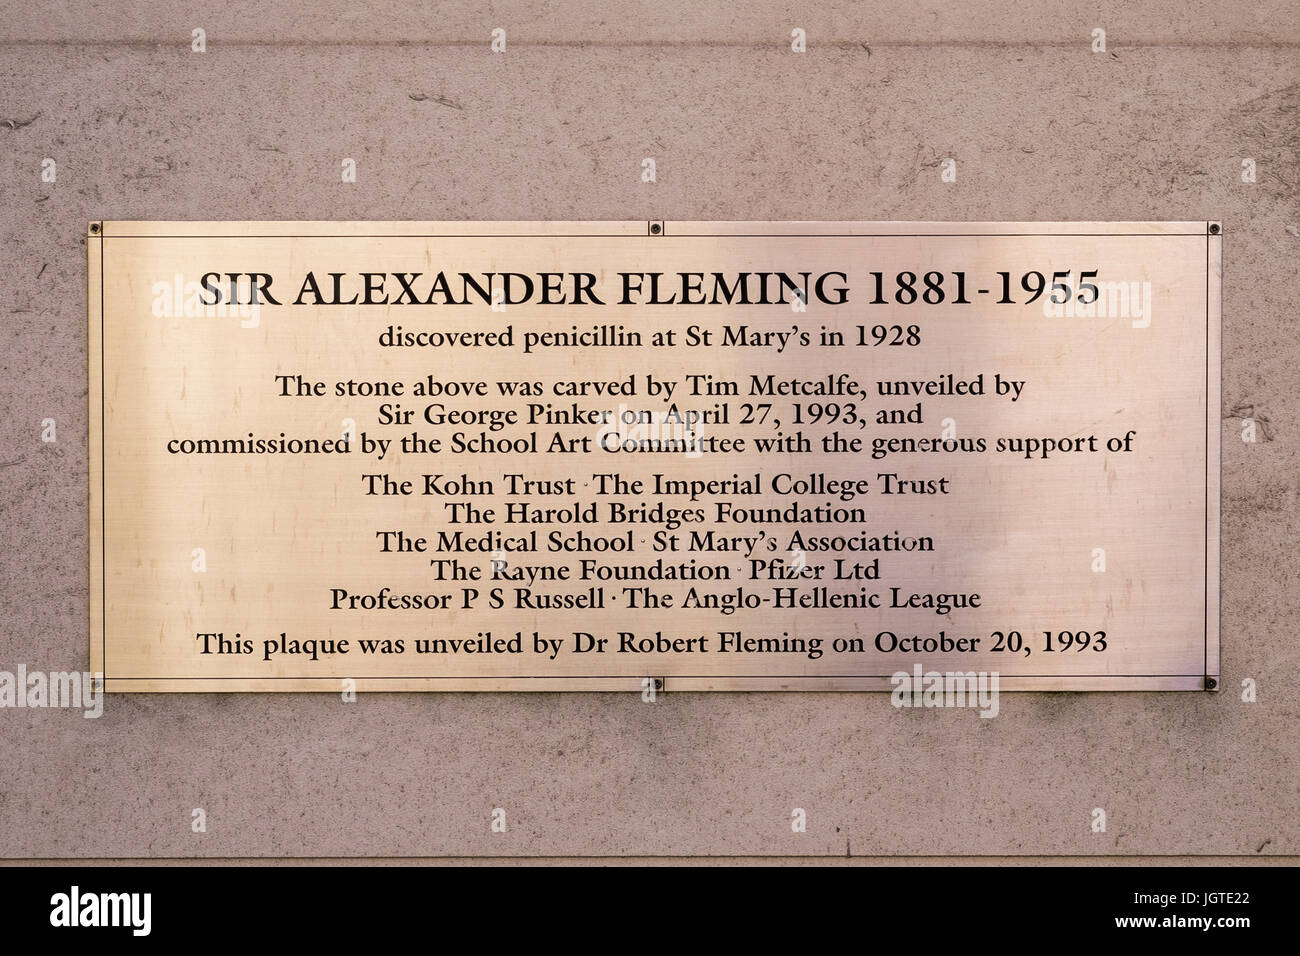 Sir Alexander Fleming discovered penicillin plaque on the wall of St.Mary's Hospital, Paddington, London, England, - Stock Image